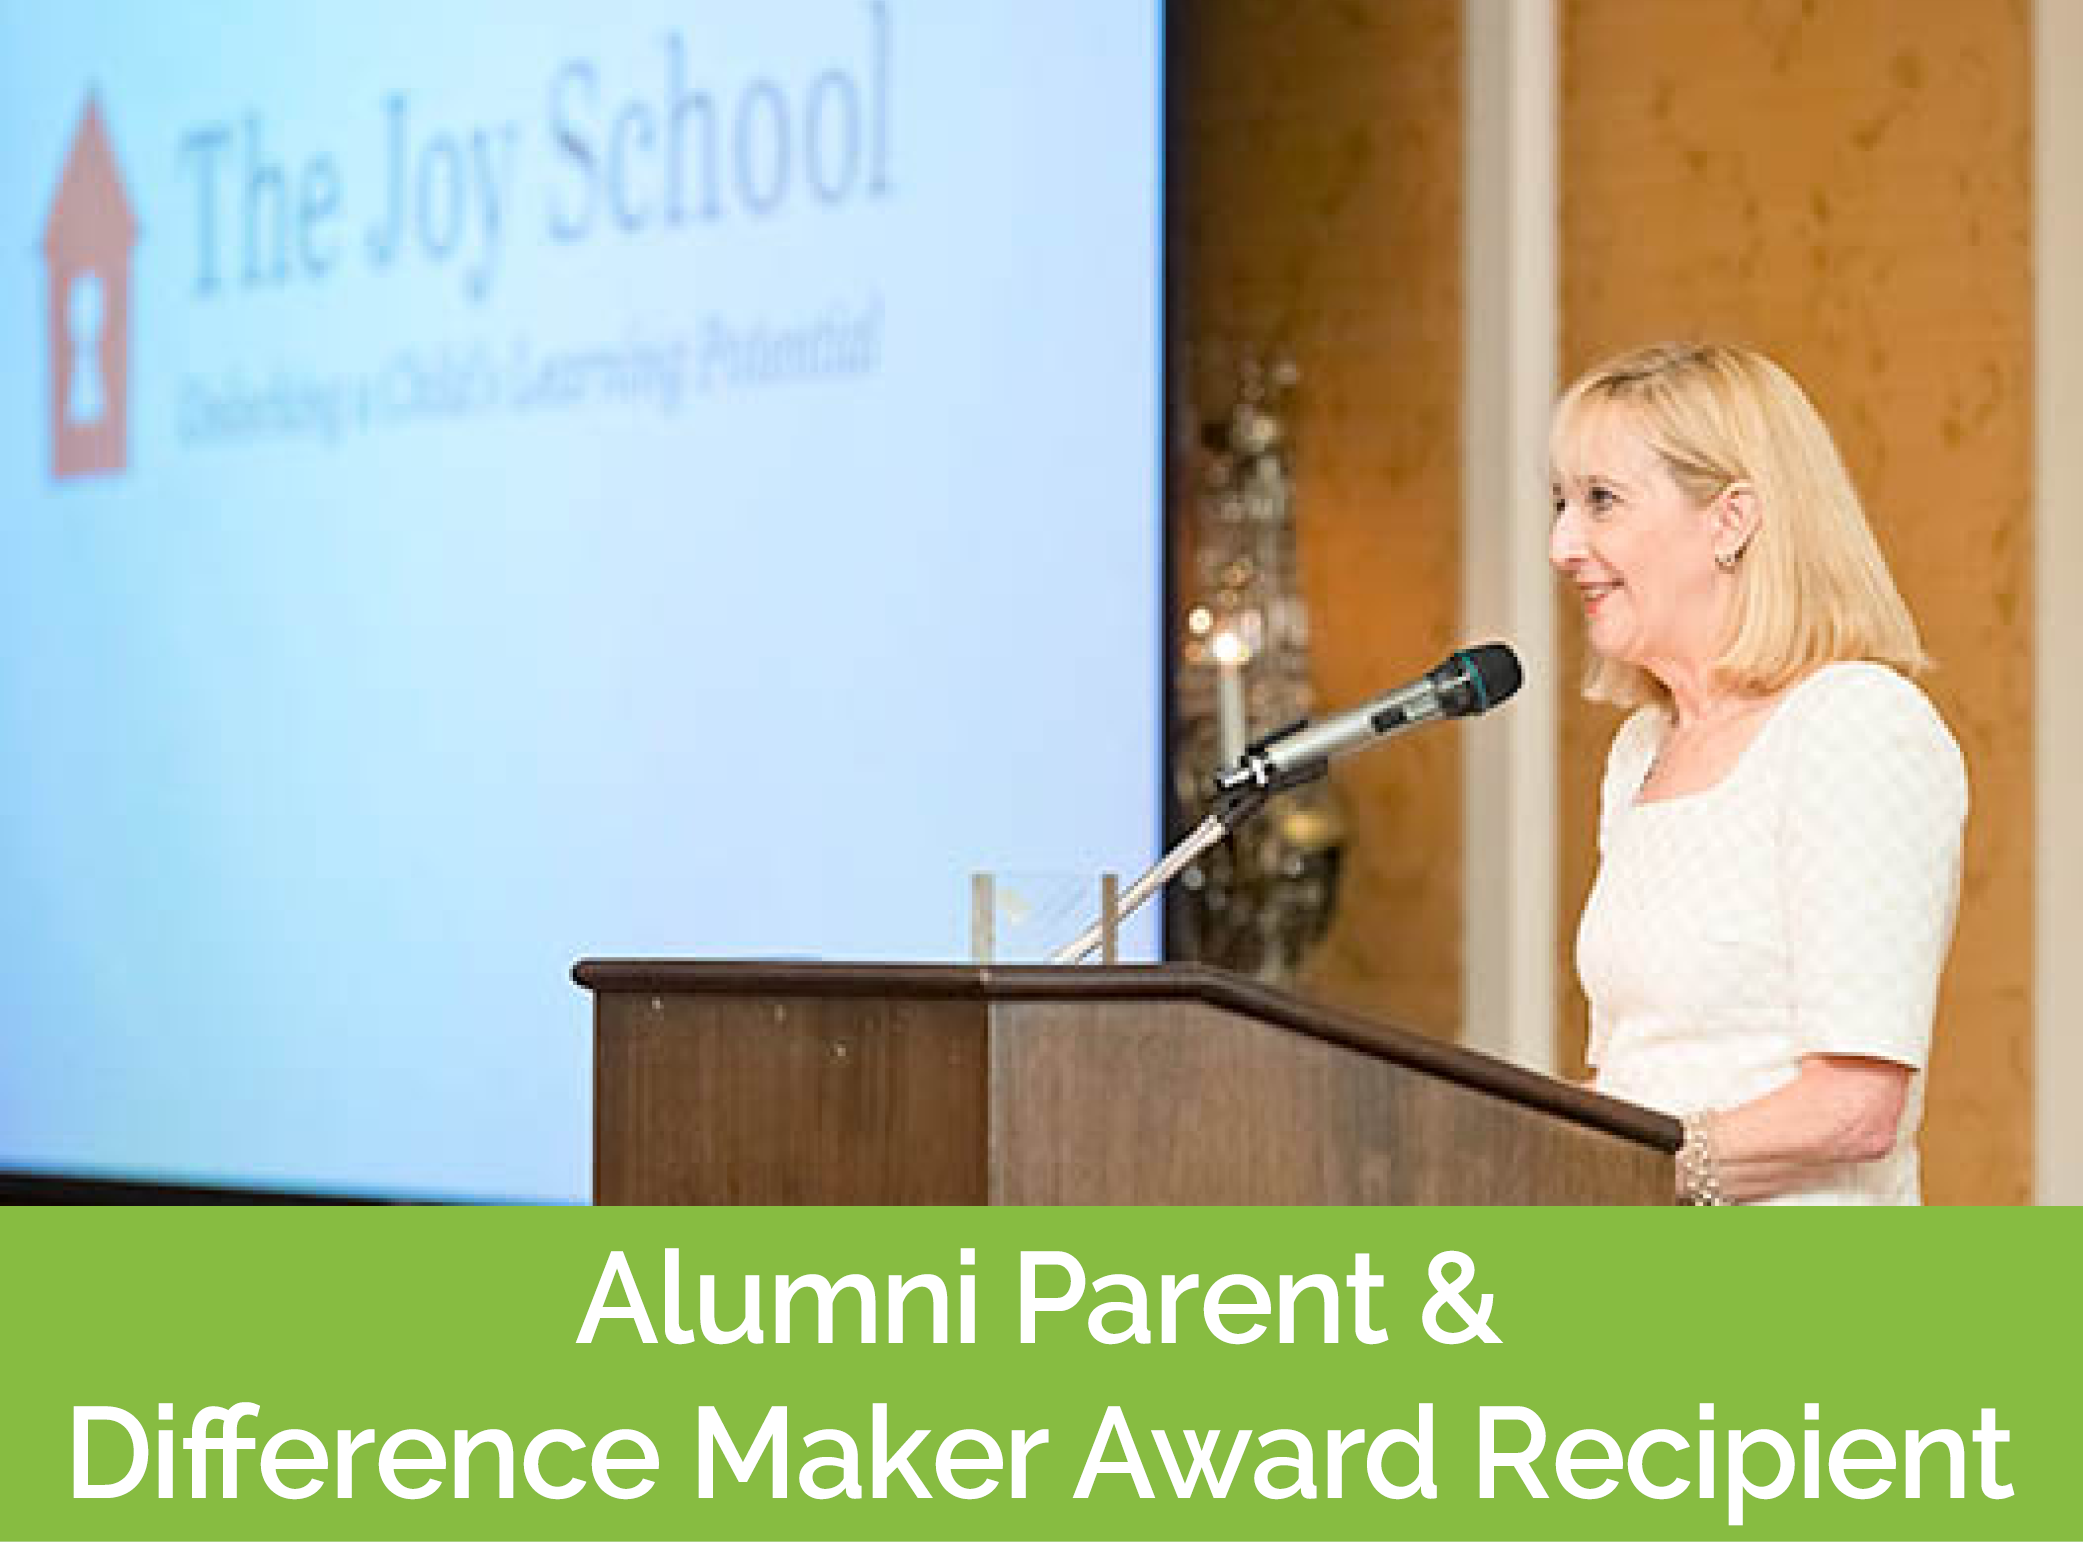 Alumni Parent & Difference Maker Award Recipient